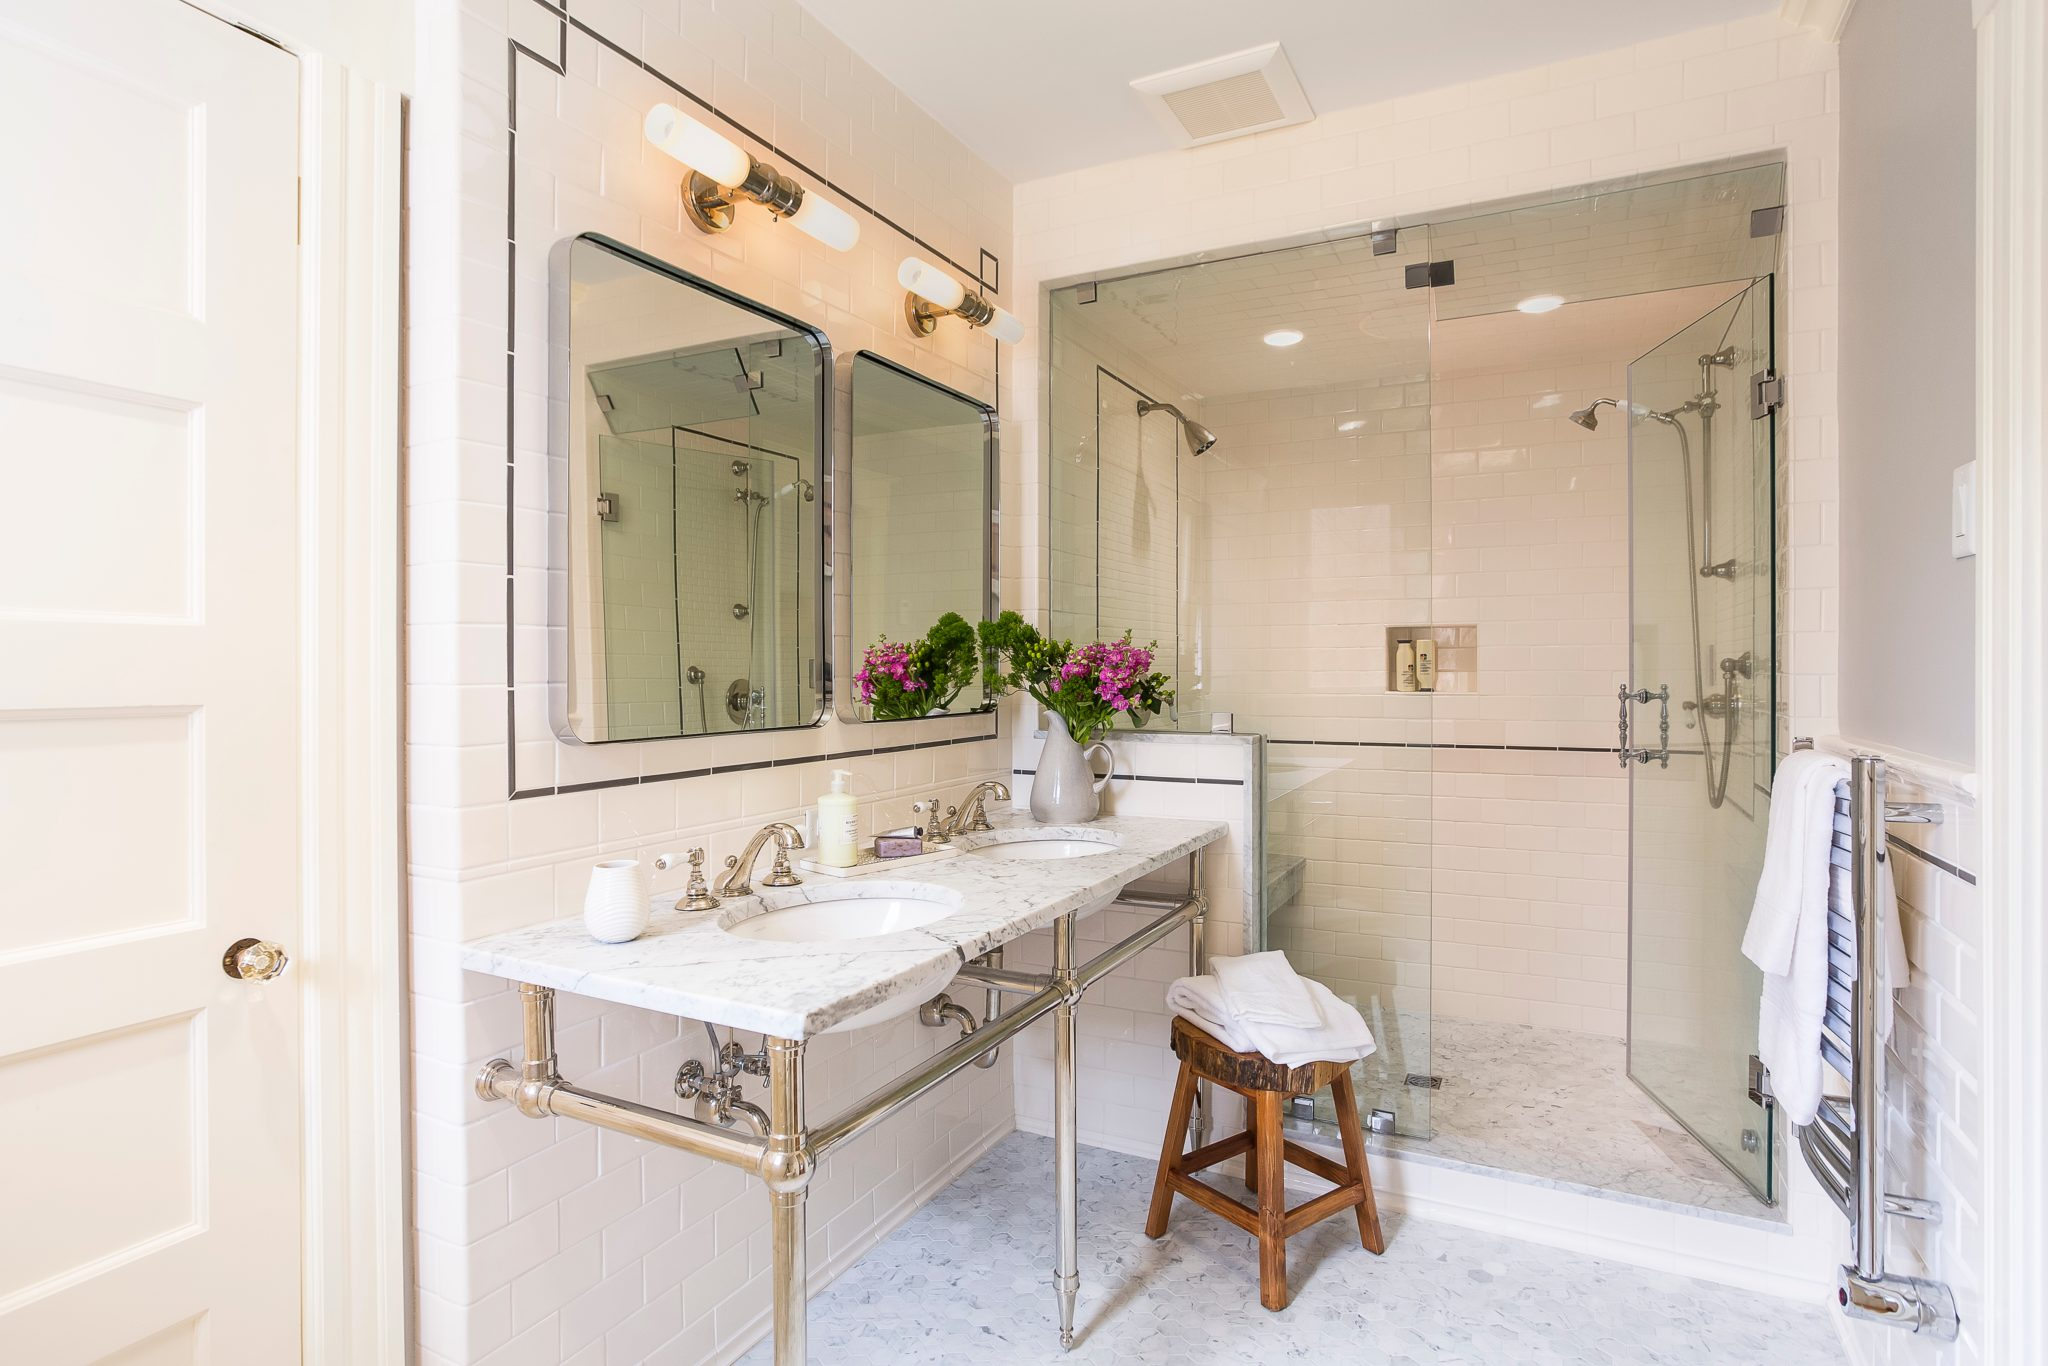 Master bathroomby SCS Design - Interiors by Sophia Shibles